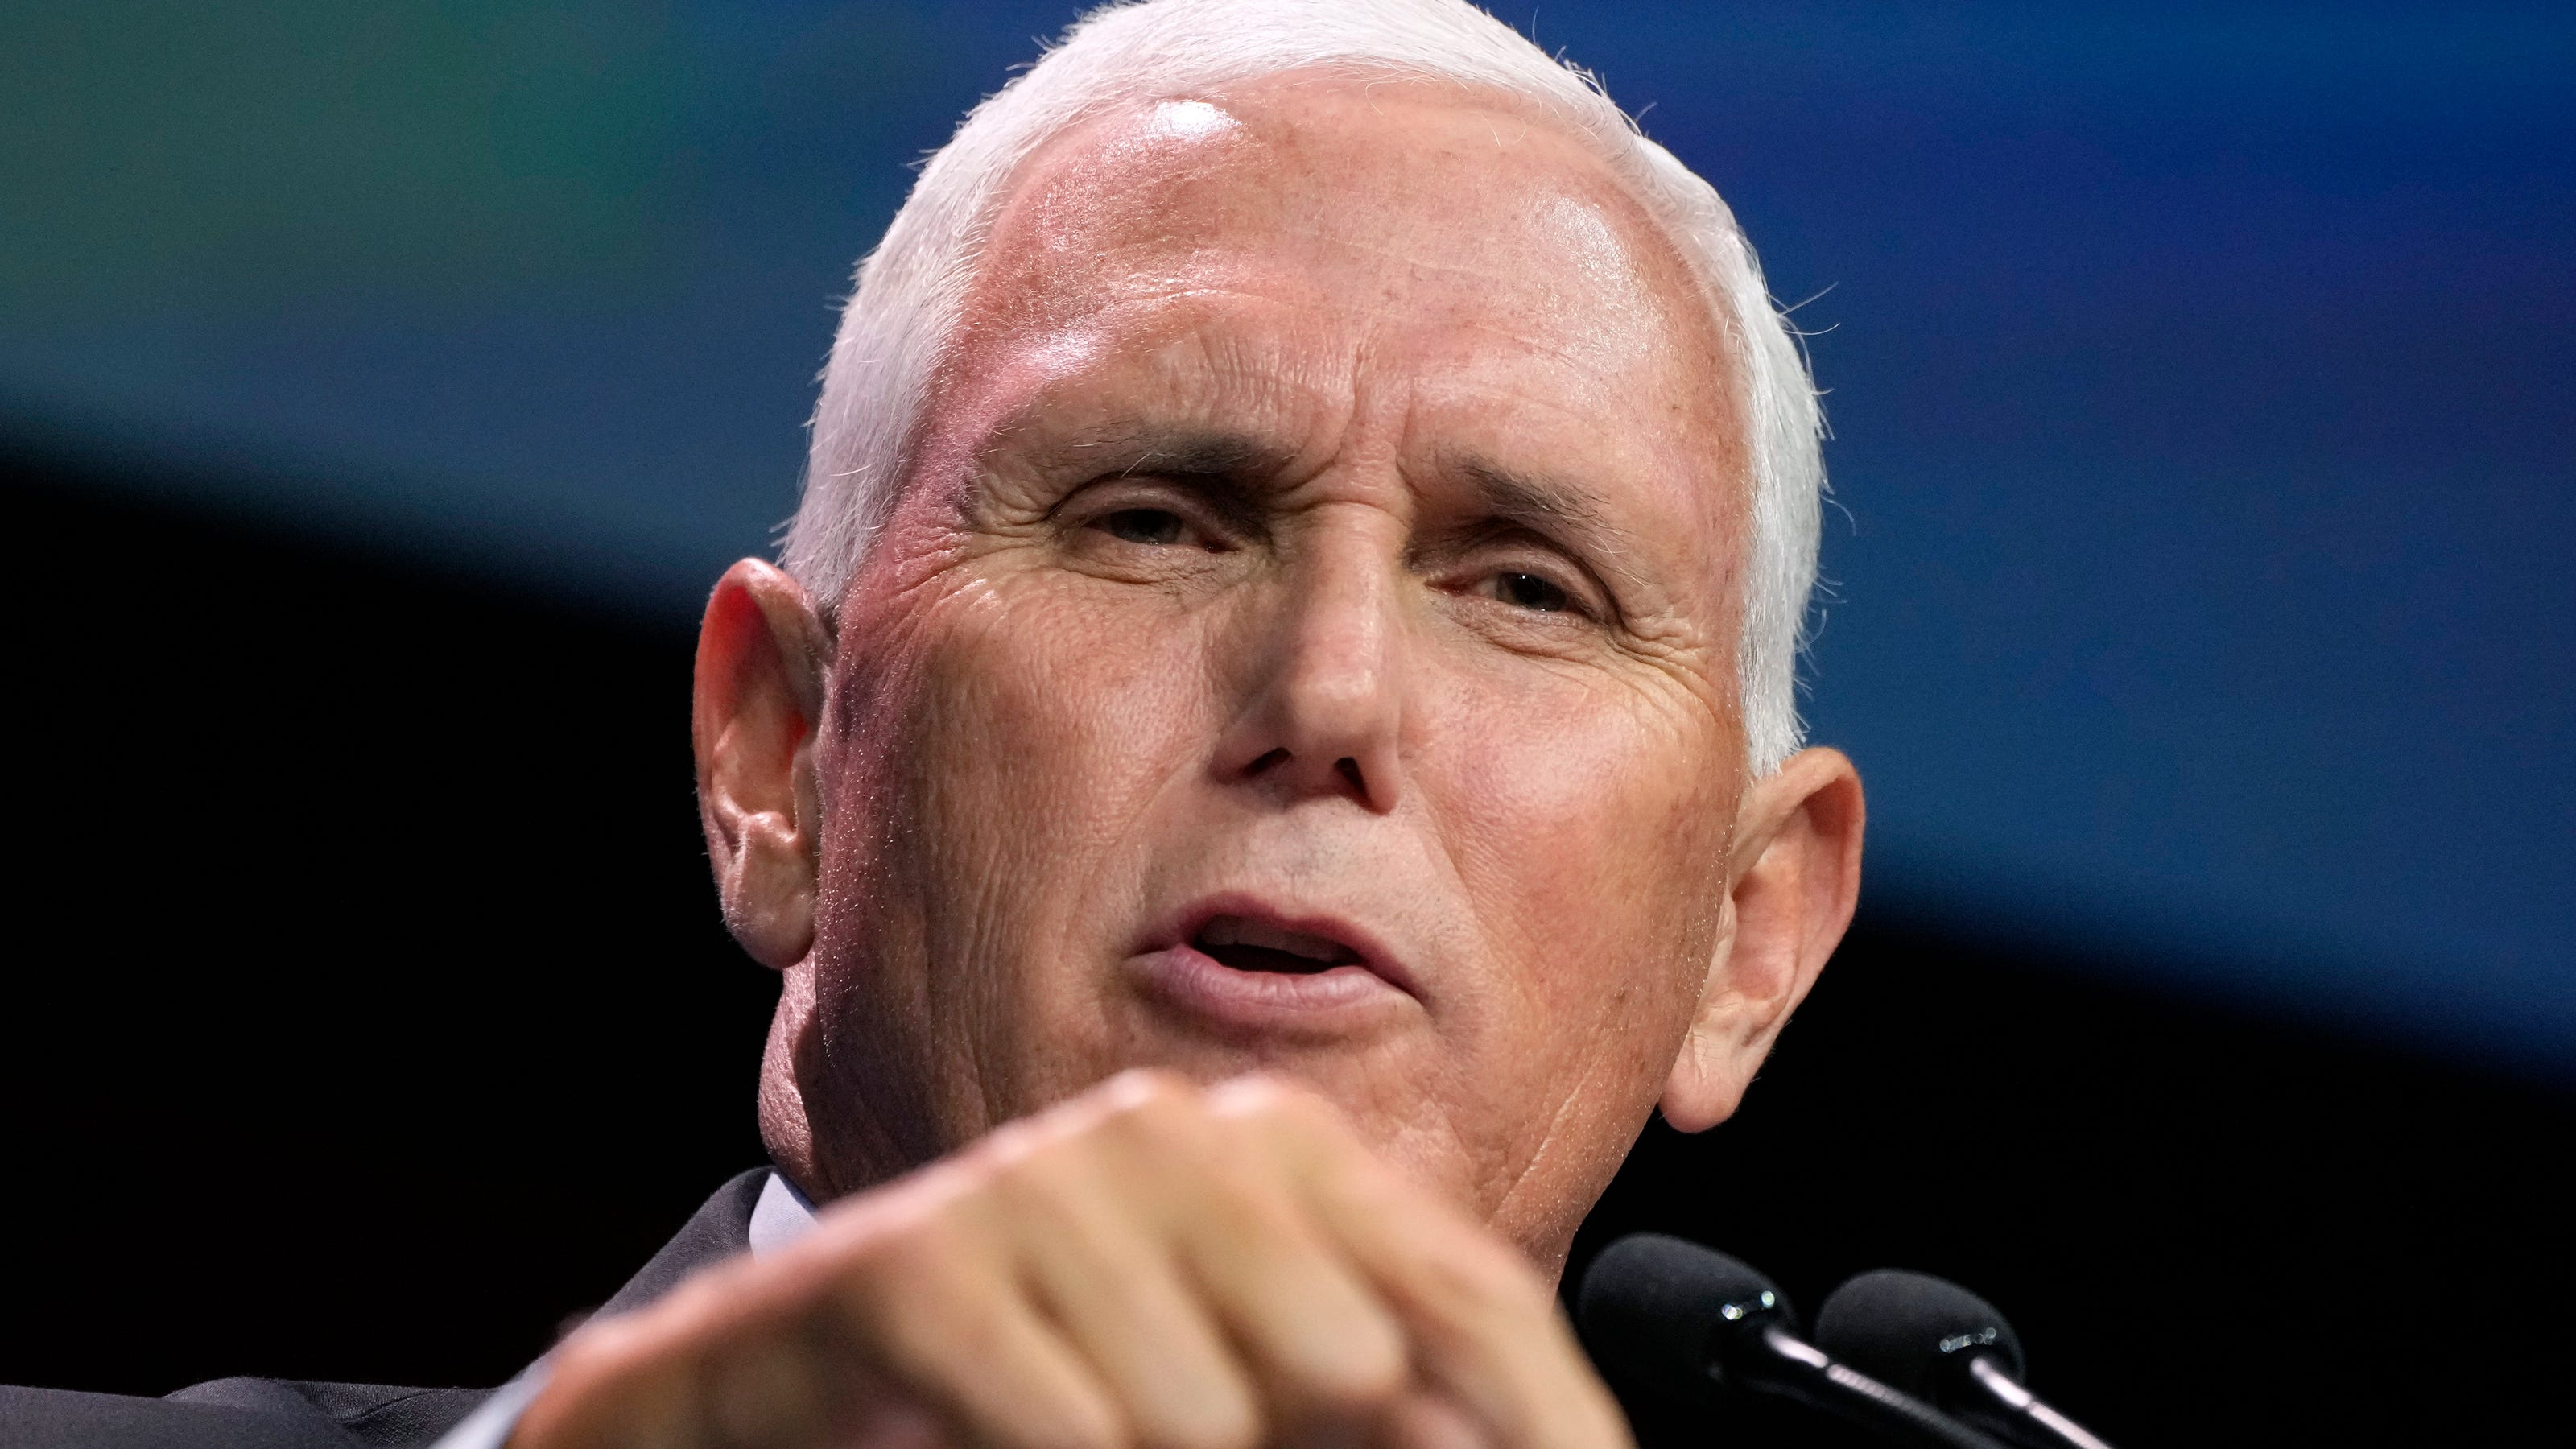 Mike Pence joins conservative groups in jumping into abortion debate at Supreme Court